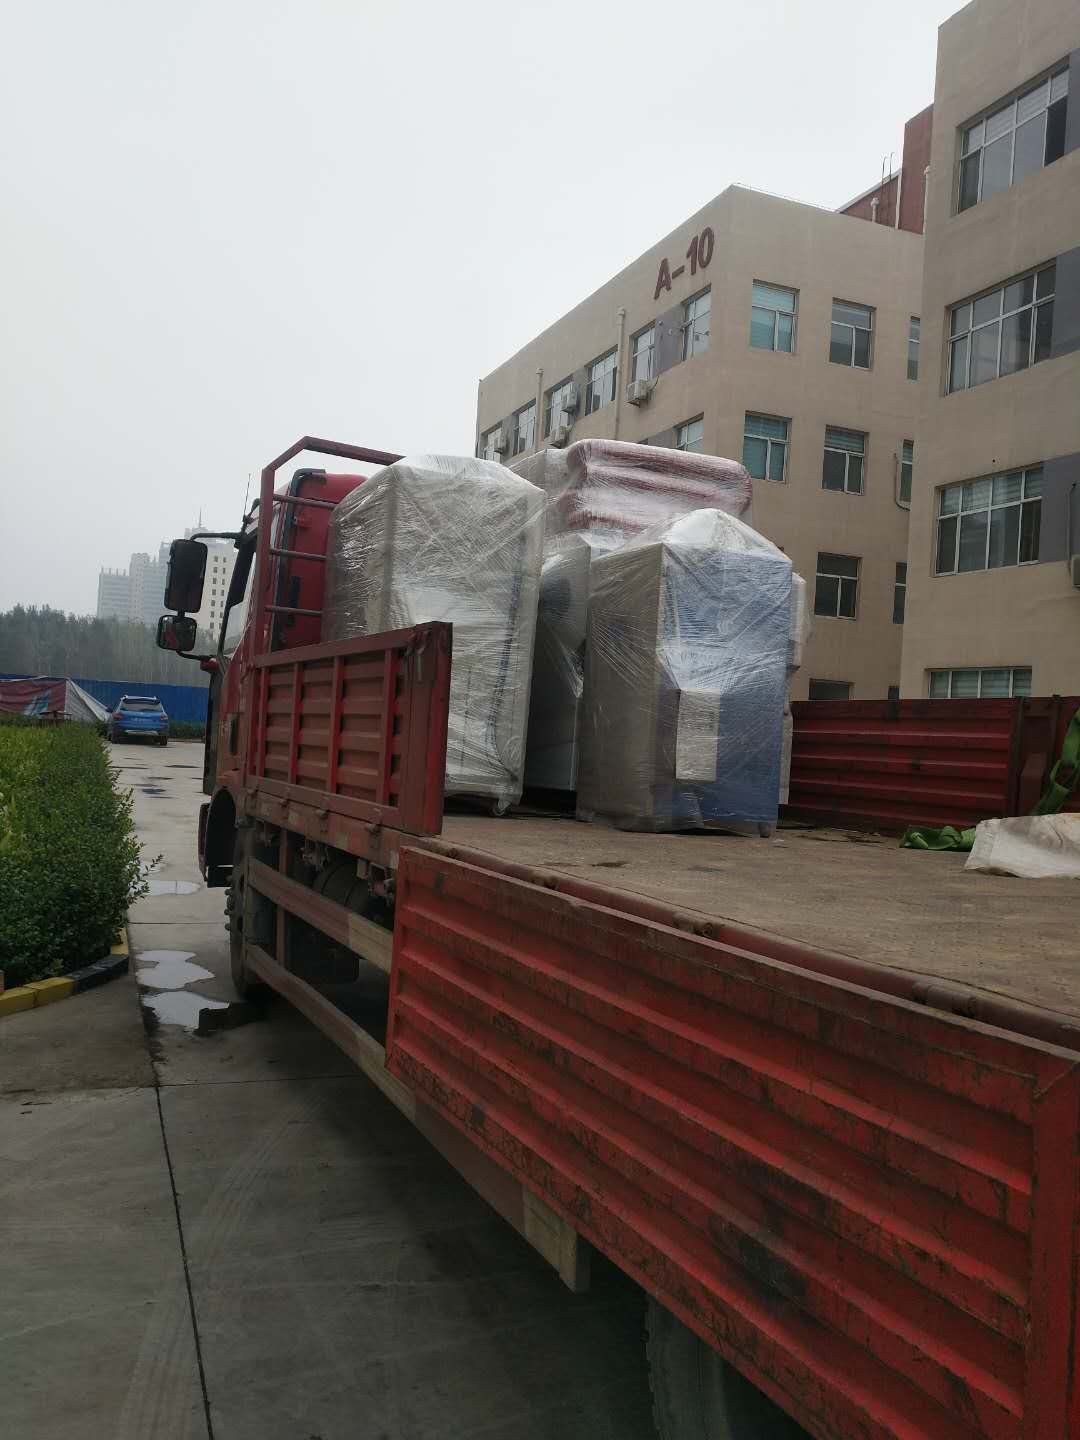 Sales champion -- LED uv irradiation crosslinking equipment loaded and delivered again!